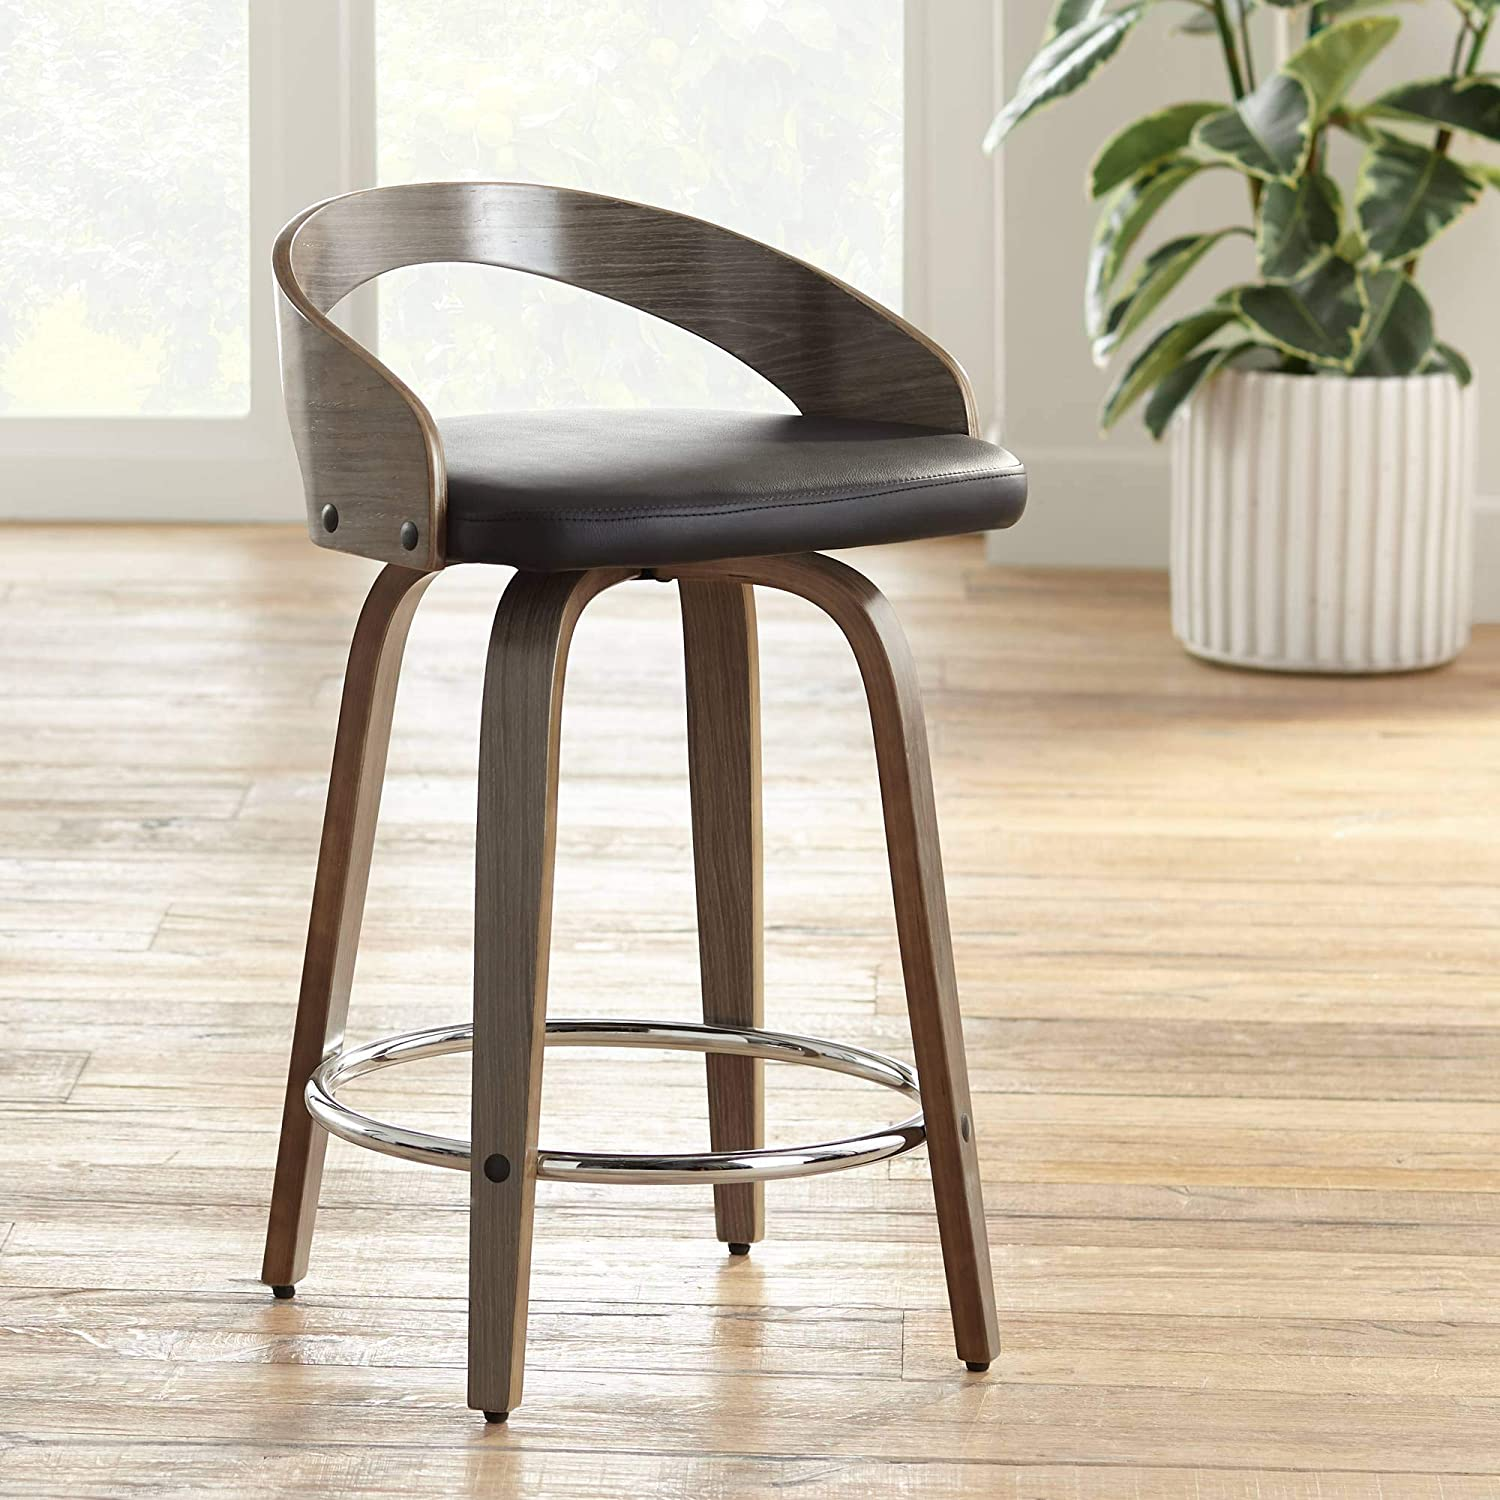 Marvelous Gratto 24 Black Faux Leather Gray Wood Swivel Counter Stool Andrewgaddart Wooden Chair Designs For Living Room Andrewgaddartcom